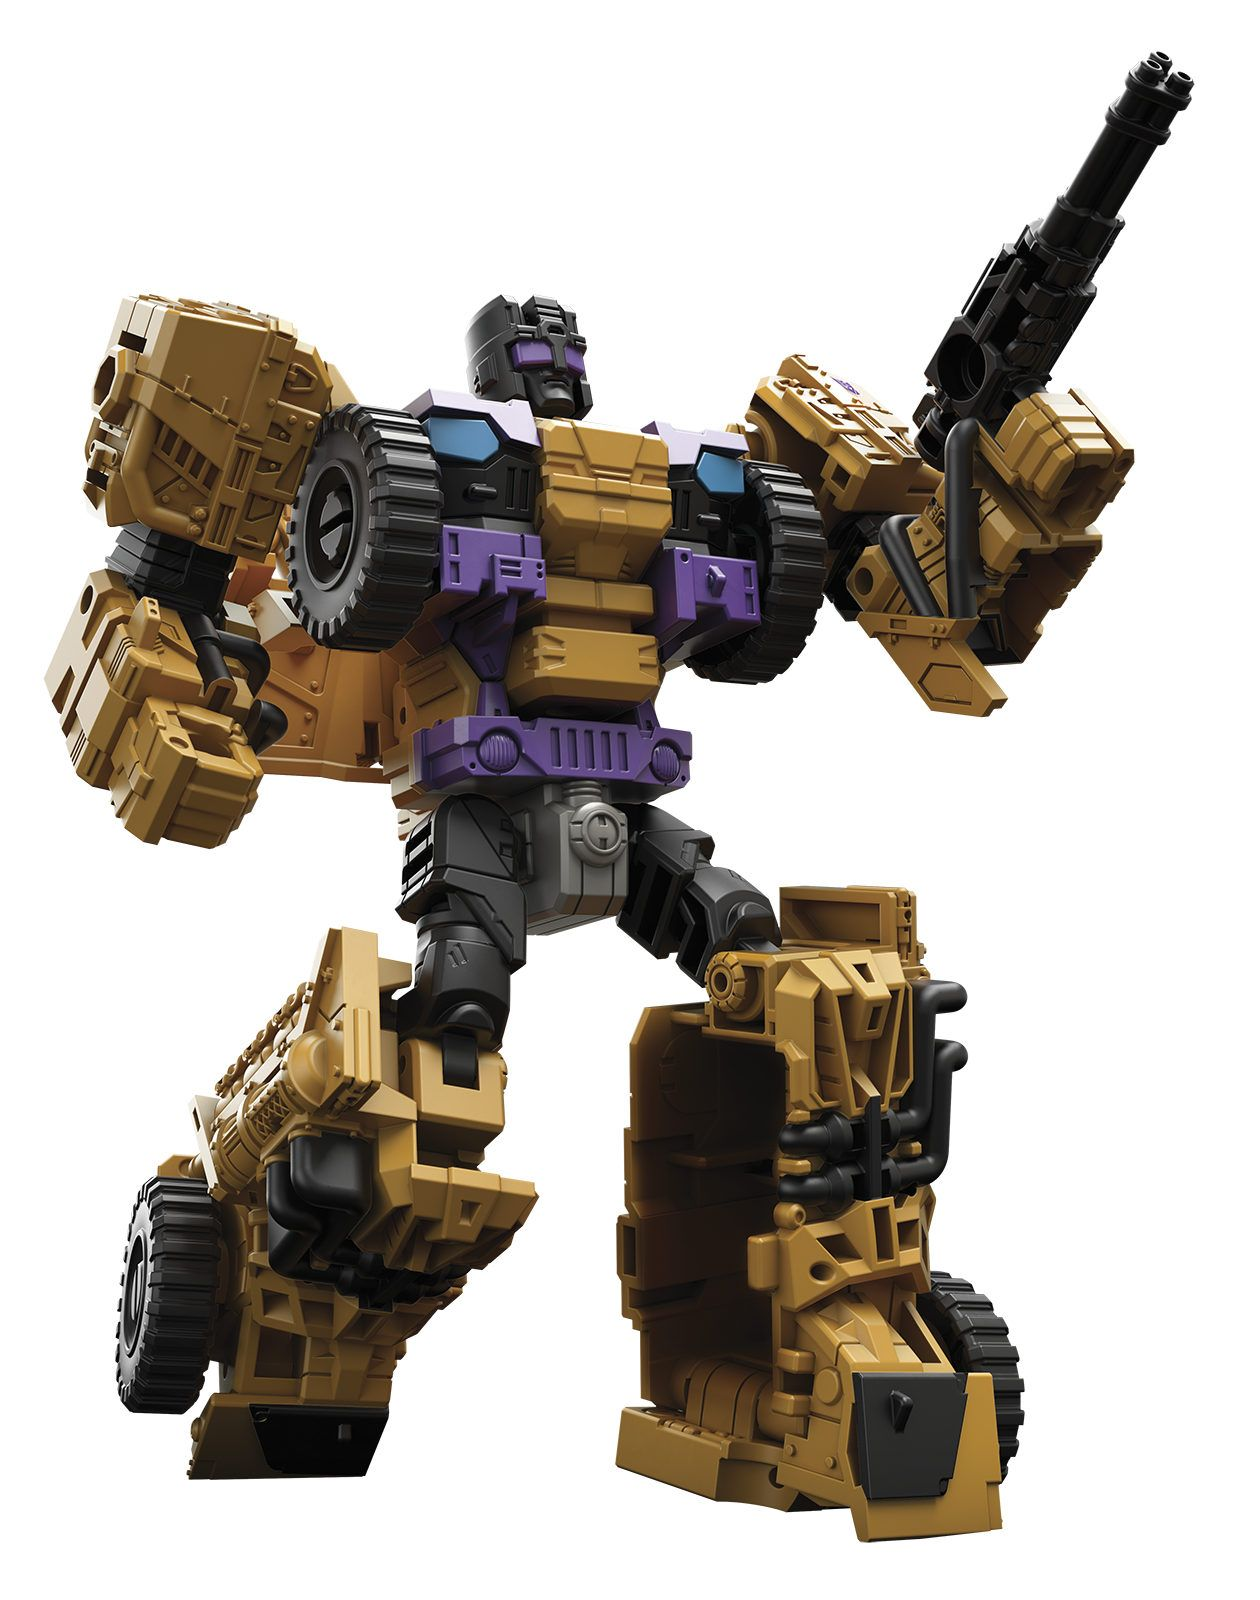 Machine Brawl Transformers Combiner Wars IDW Action Figure Collection Boy Gift